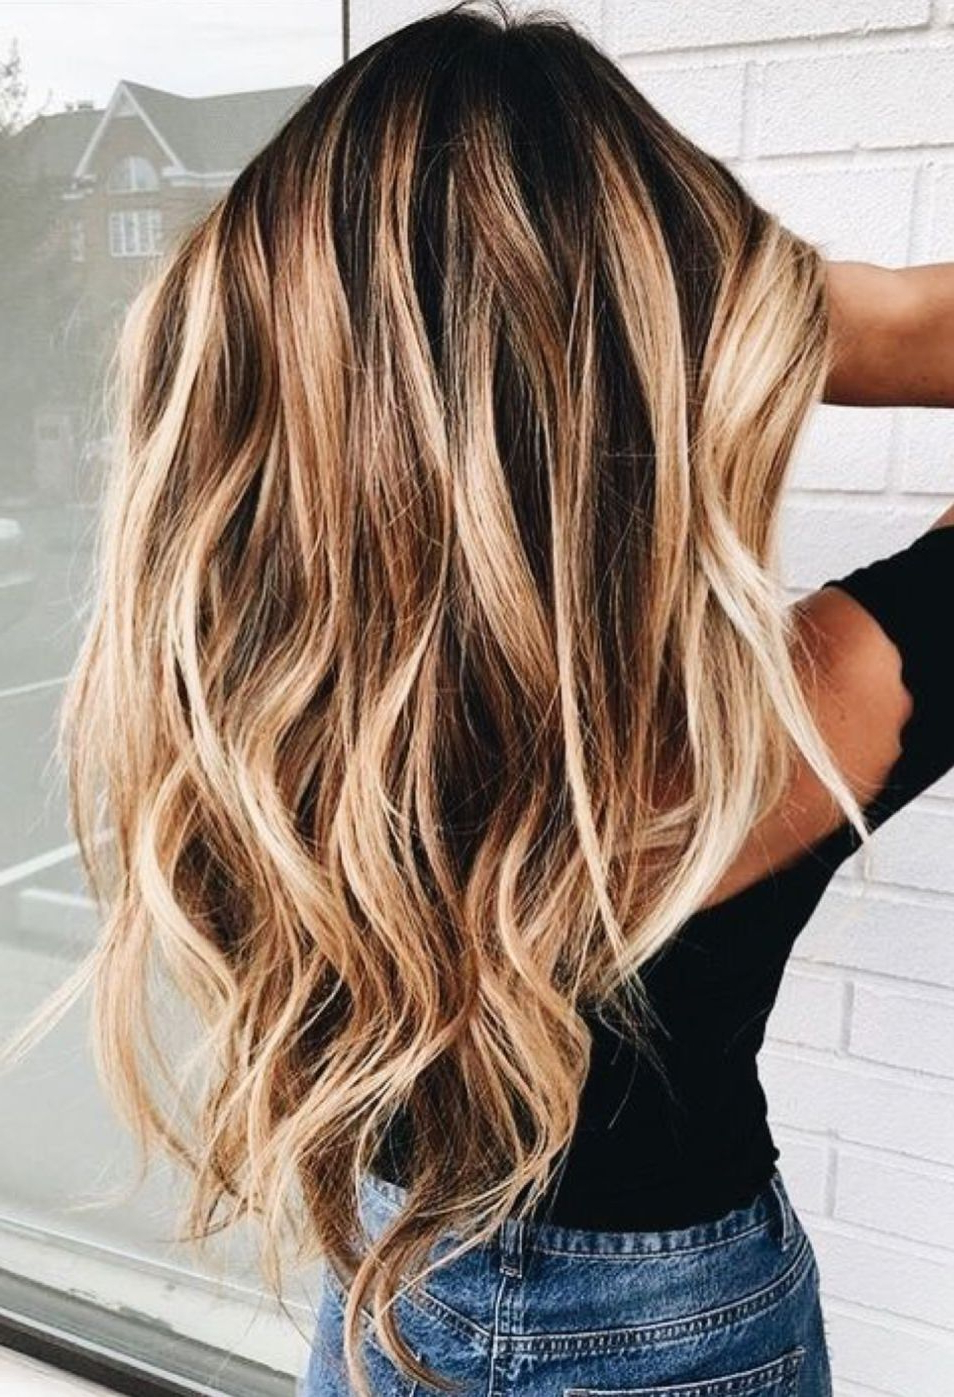 Pinangelic Fokkens On Hair | Pinterest | Hair Style, Hair Throughout Angelic Blonde Balayage Bob Hairstyles With Curls (View 8 of 20)